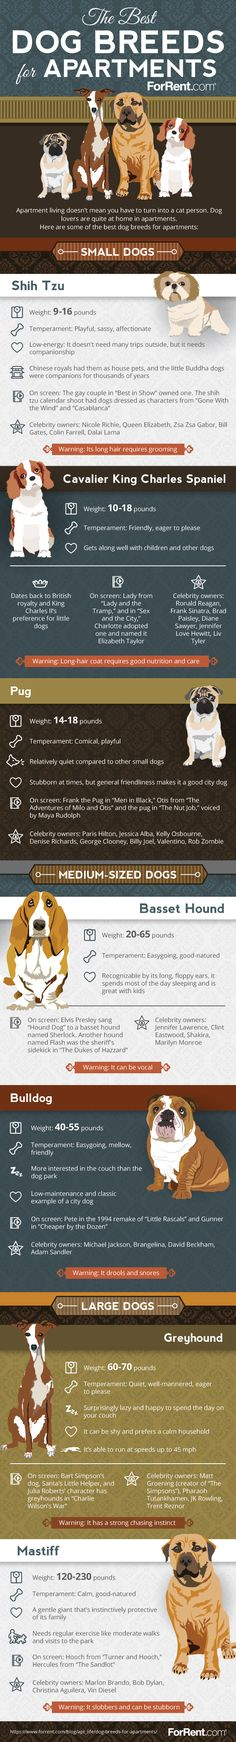 The Best Dog Breeds for Apartments